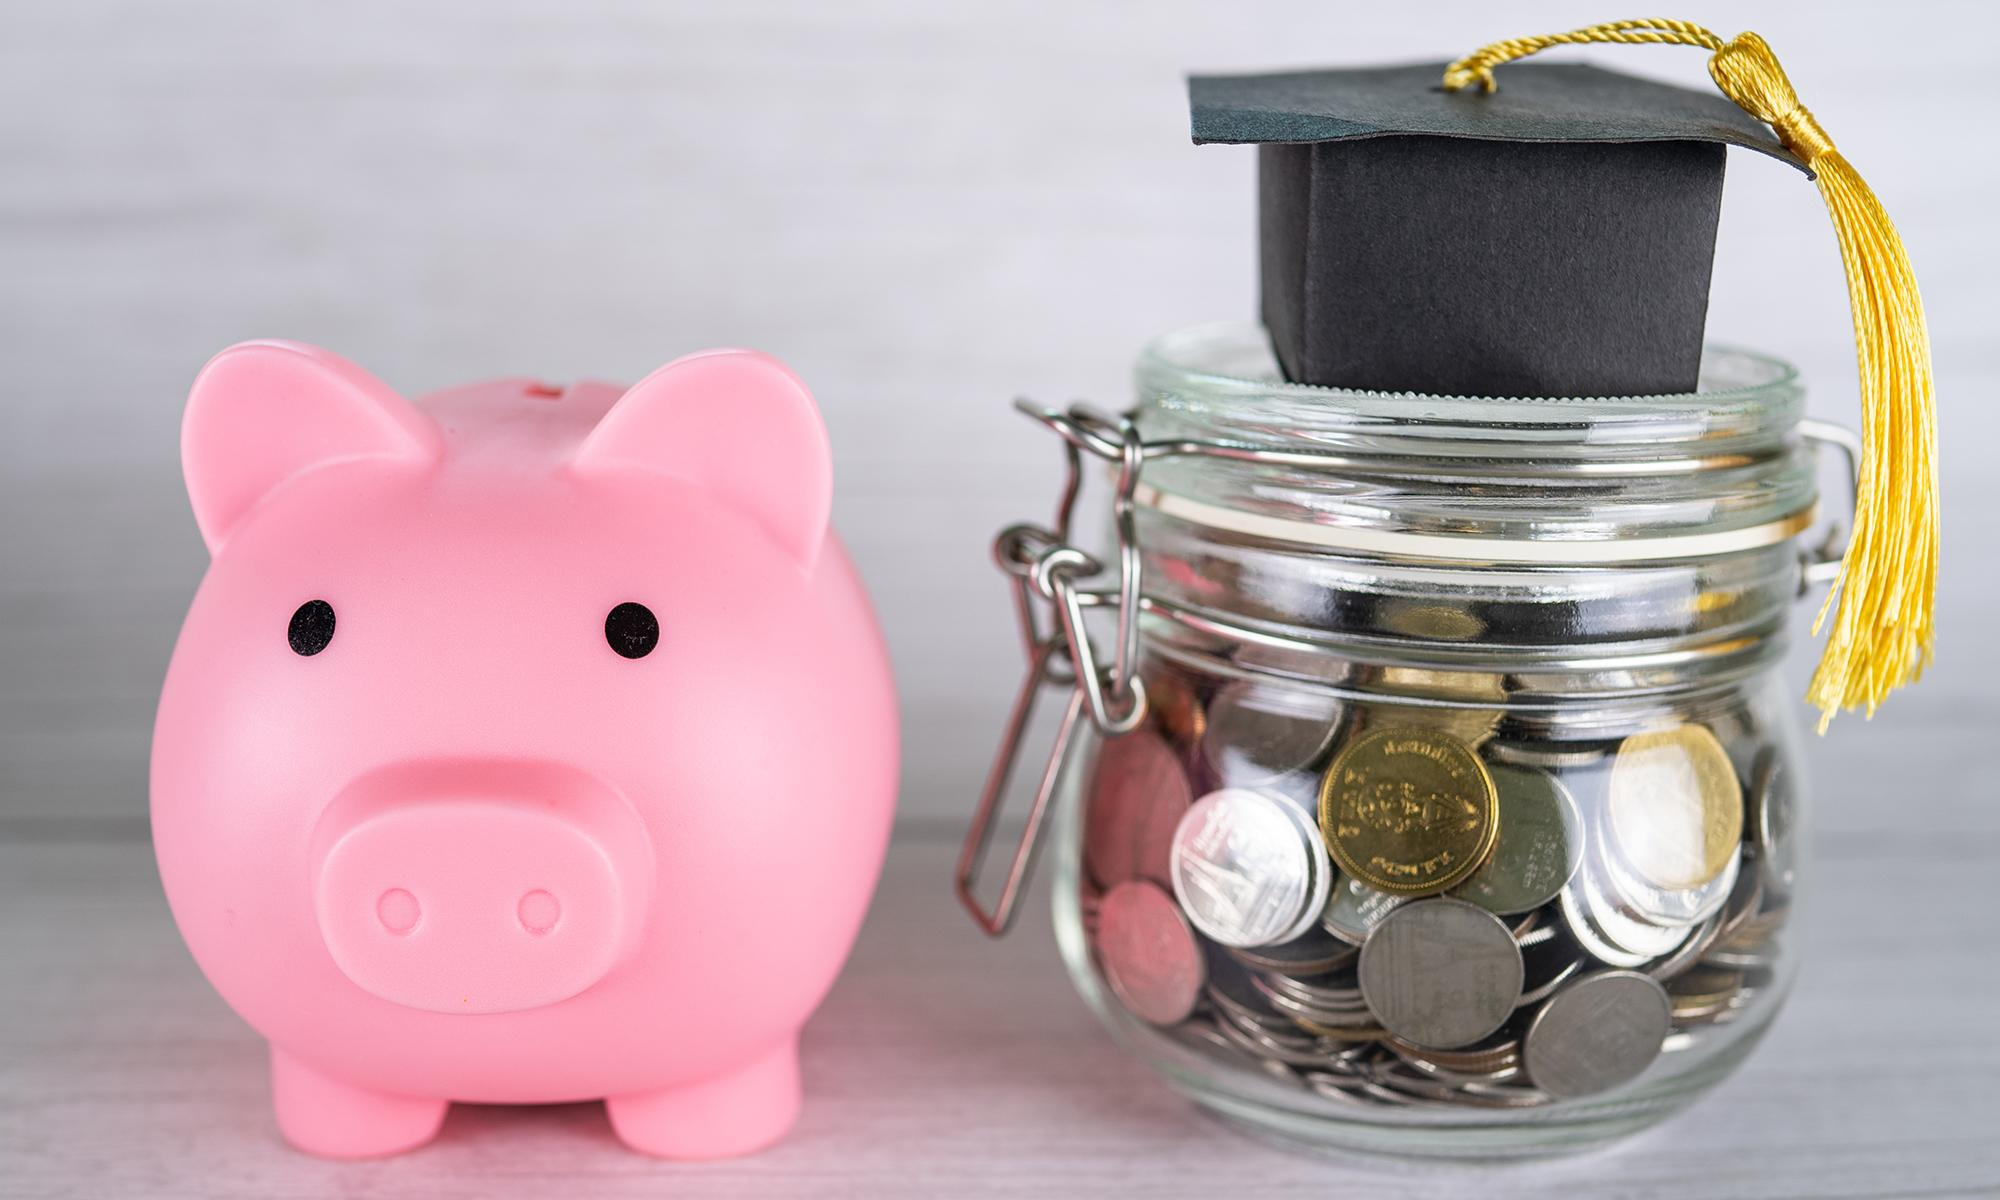 Student discounts image with piggy bank for the Engadget 2021 Back to School guide.